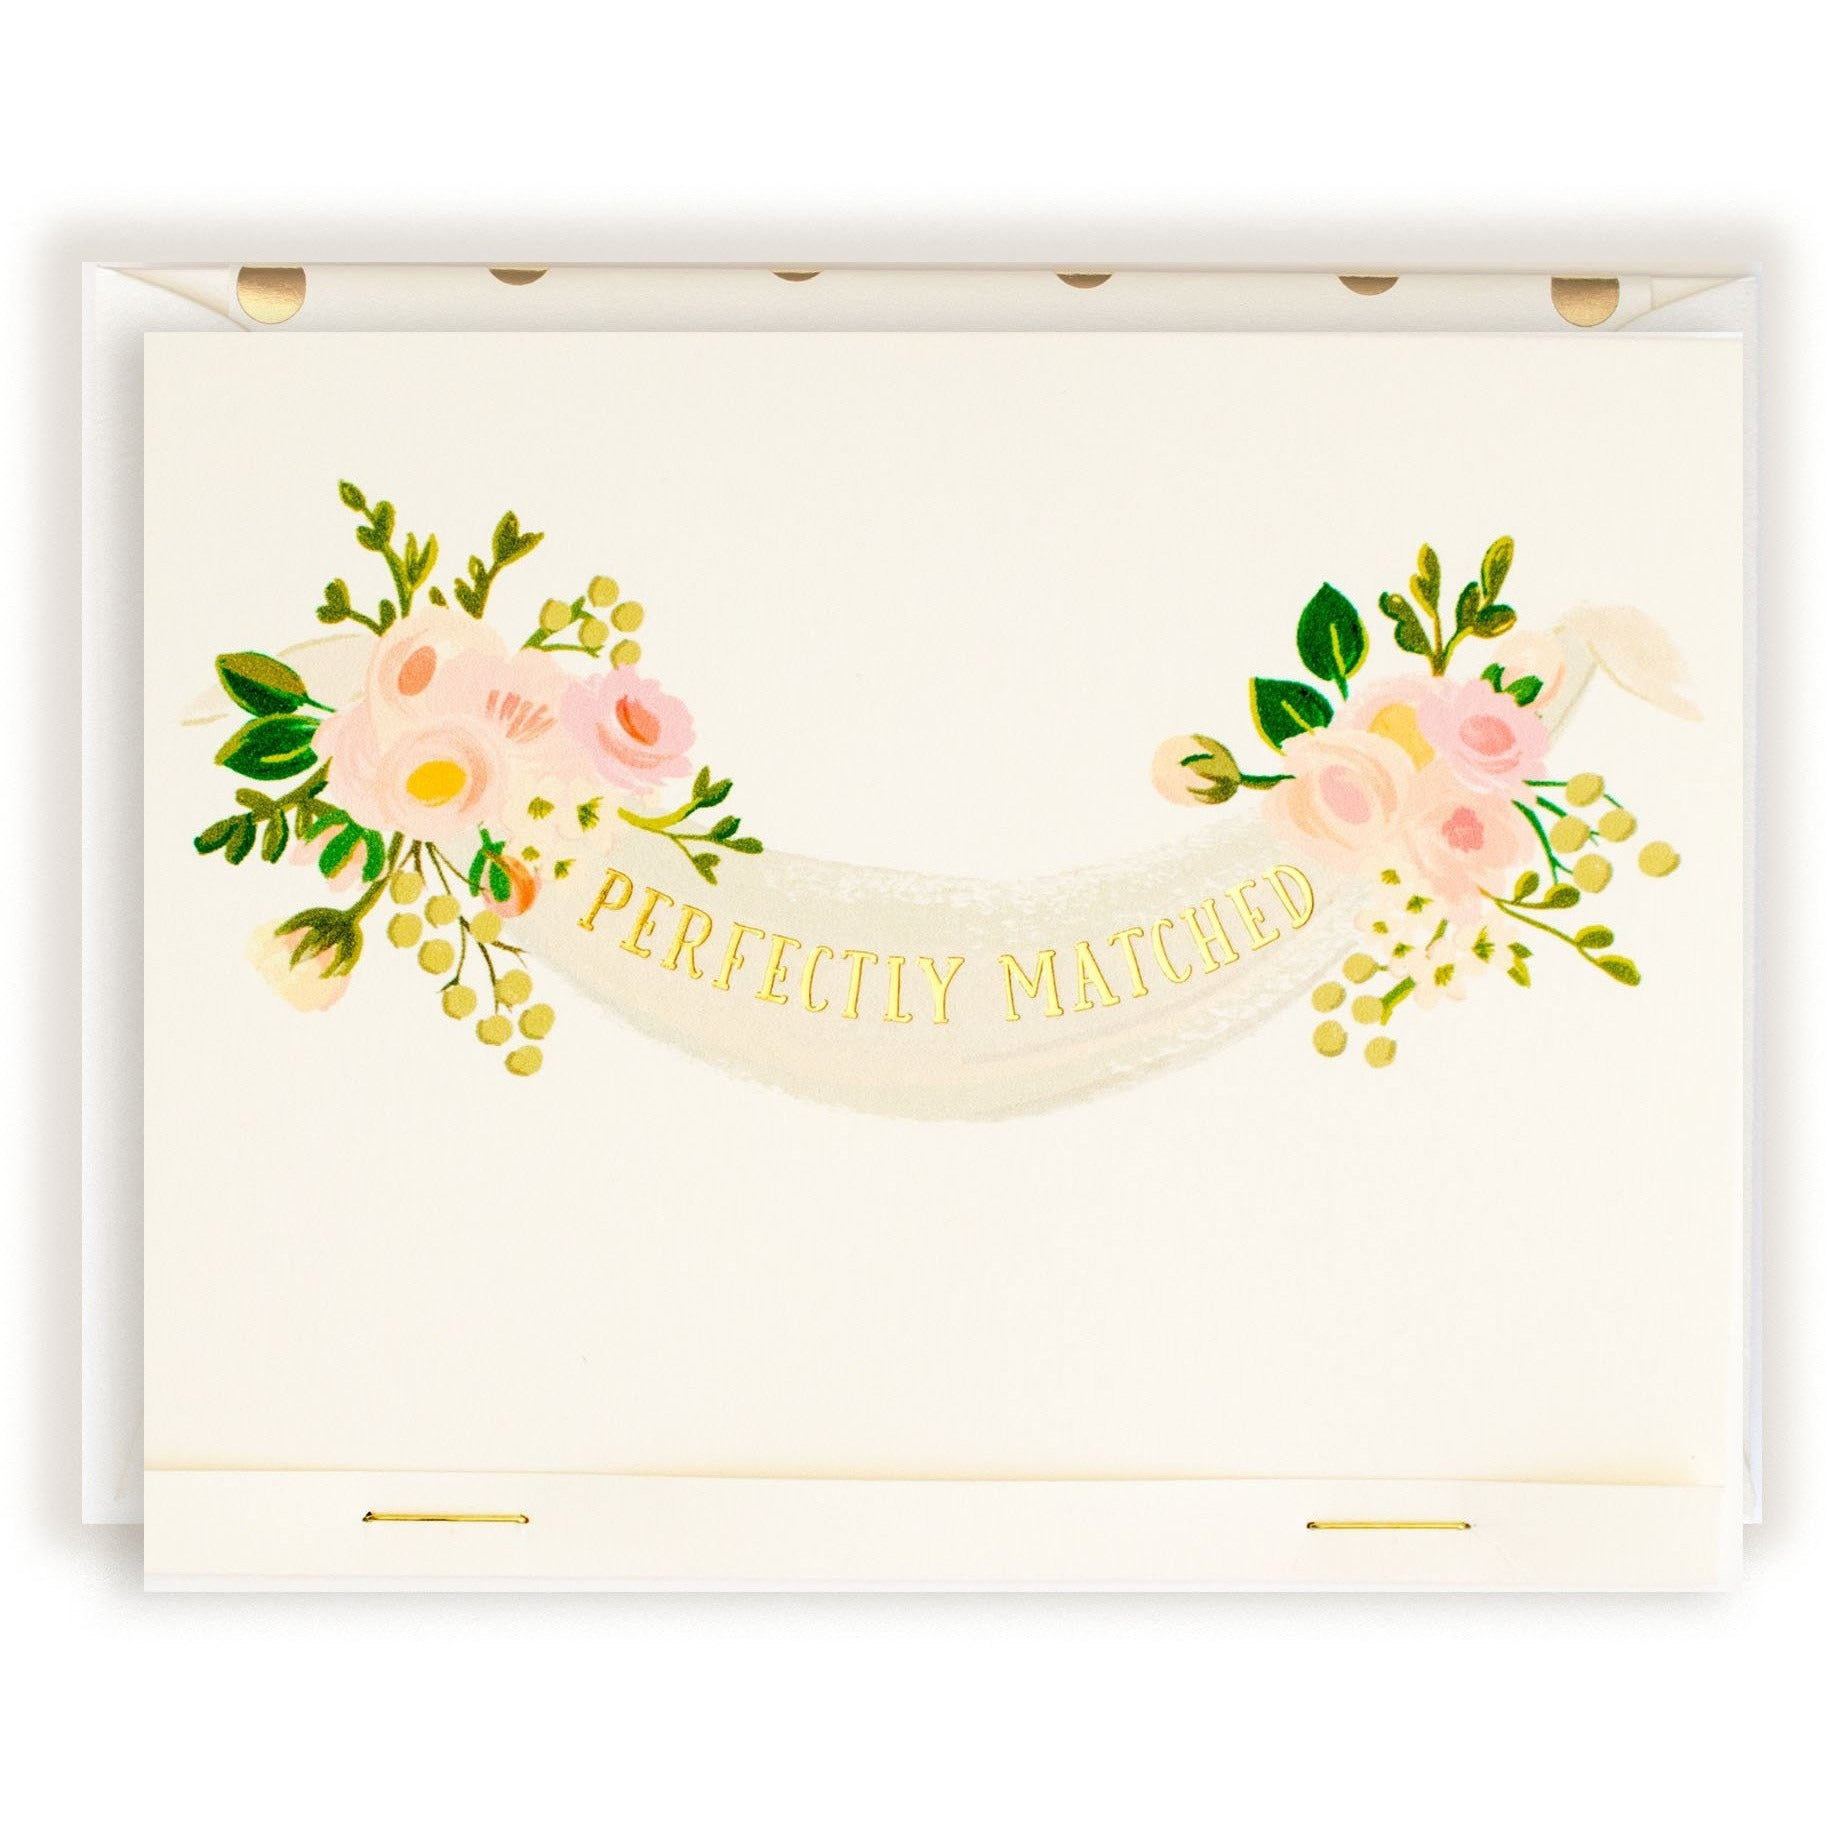 """Perfectly Matched"" Greeting Card with Included Gold Foil Envelope - The First Snow"